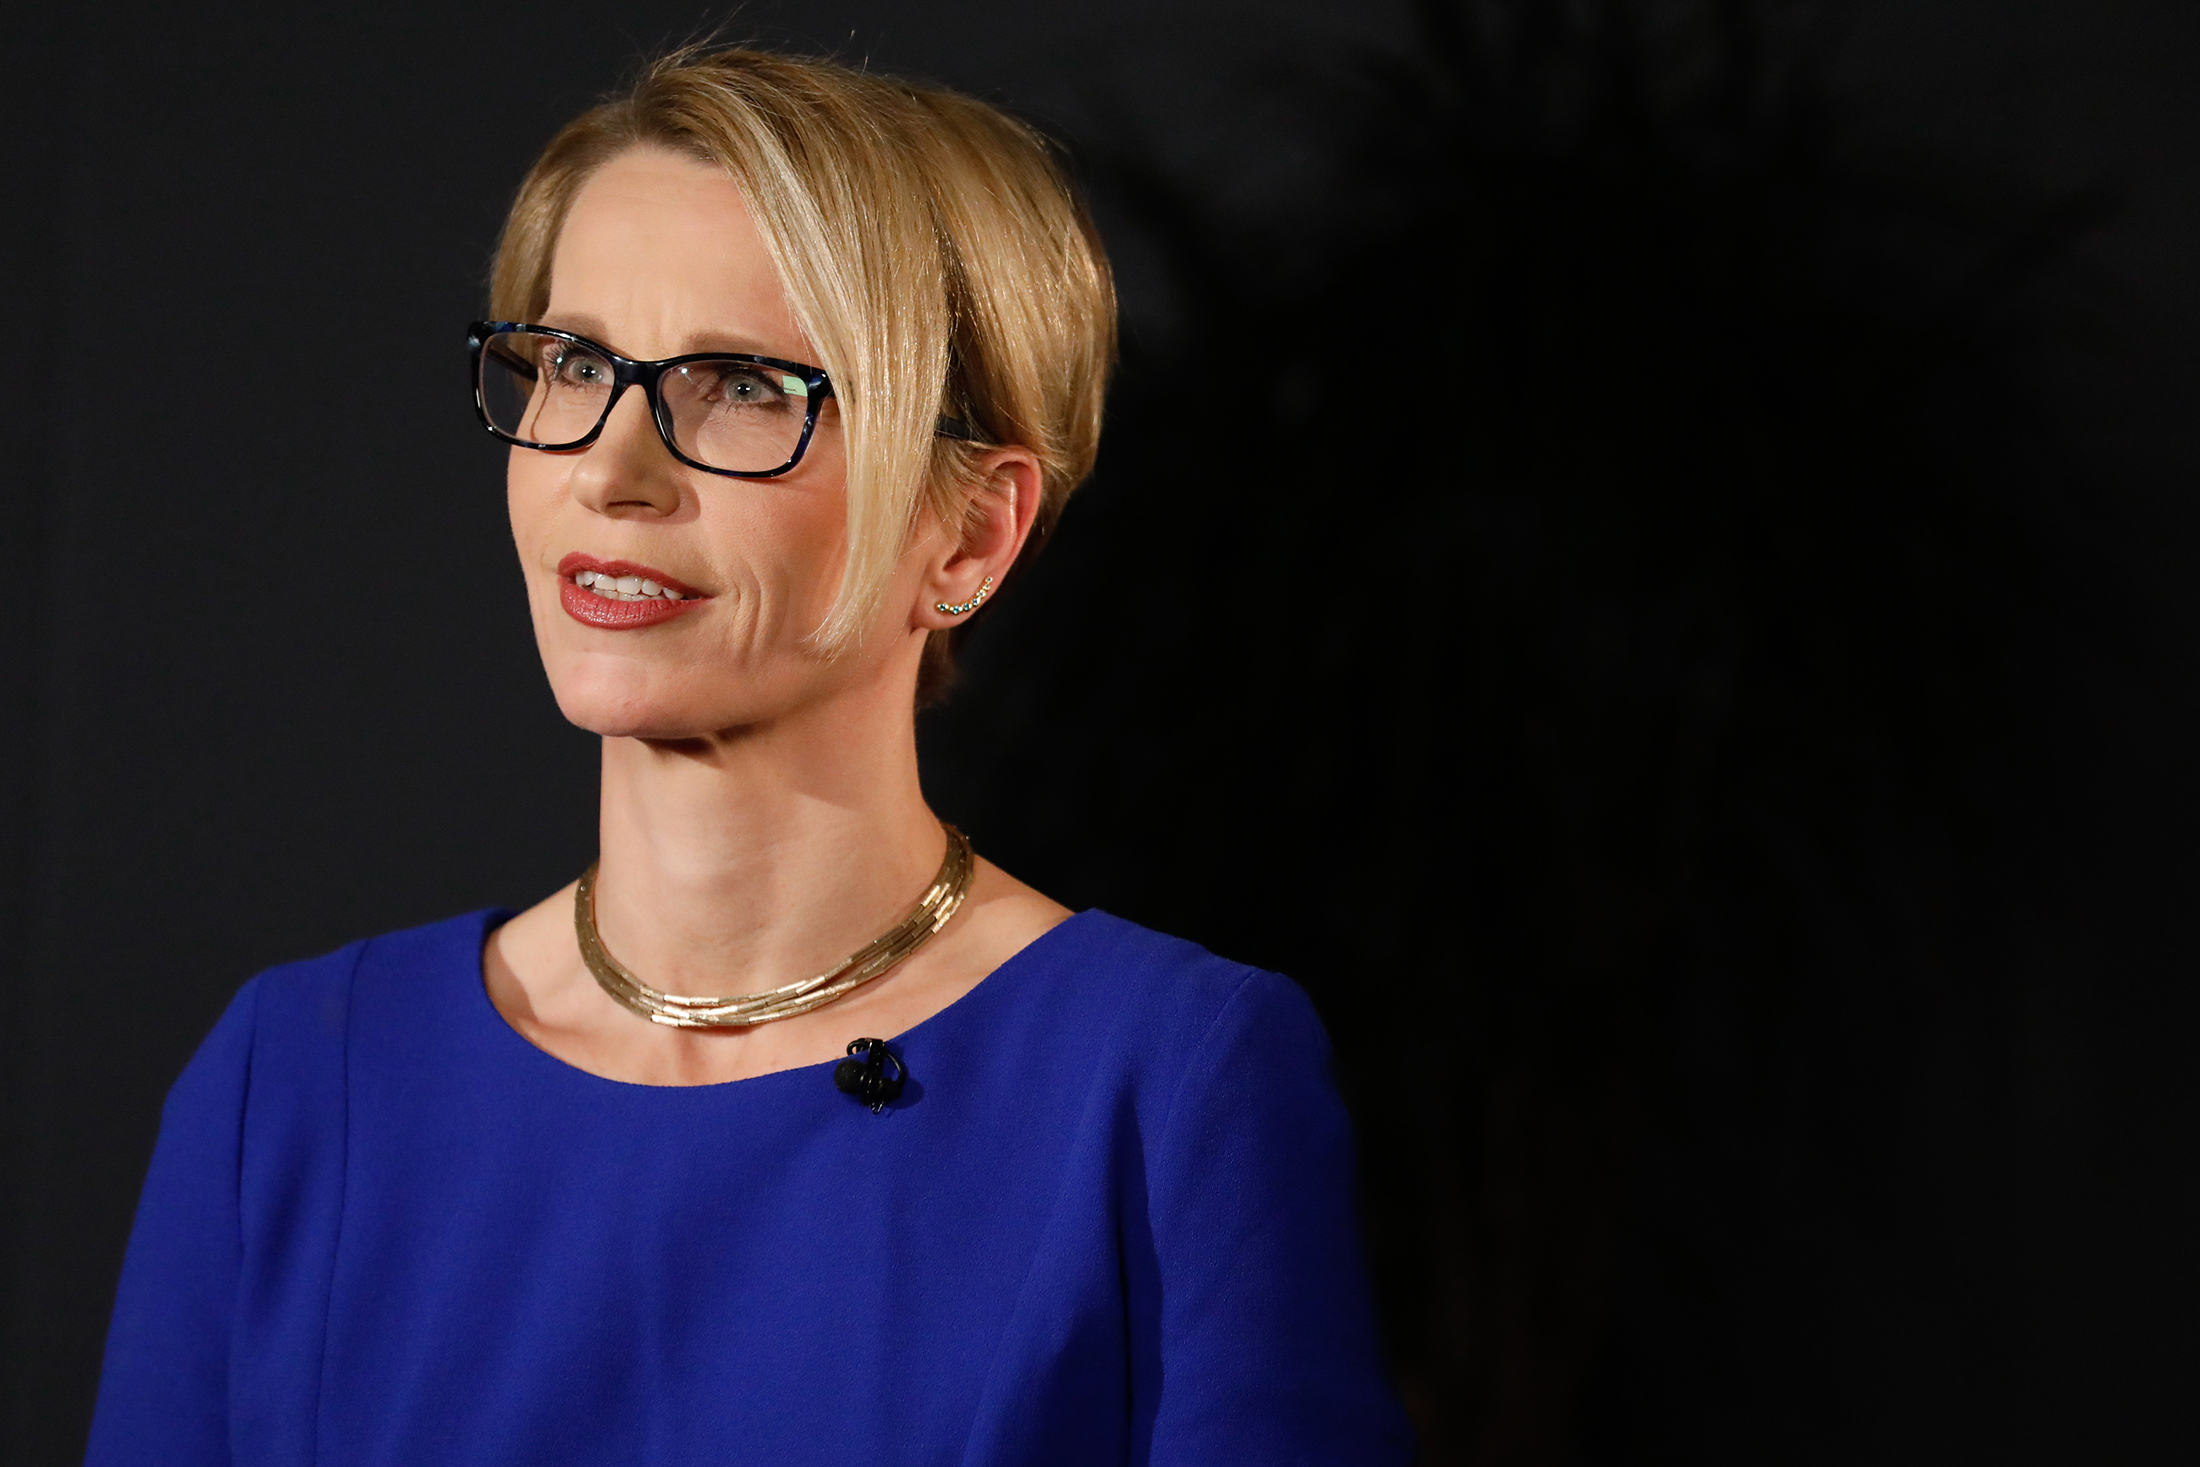 Big Pharma's First Female CEO Disrupts Glaxo From Within